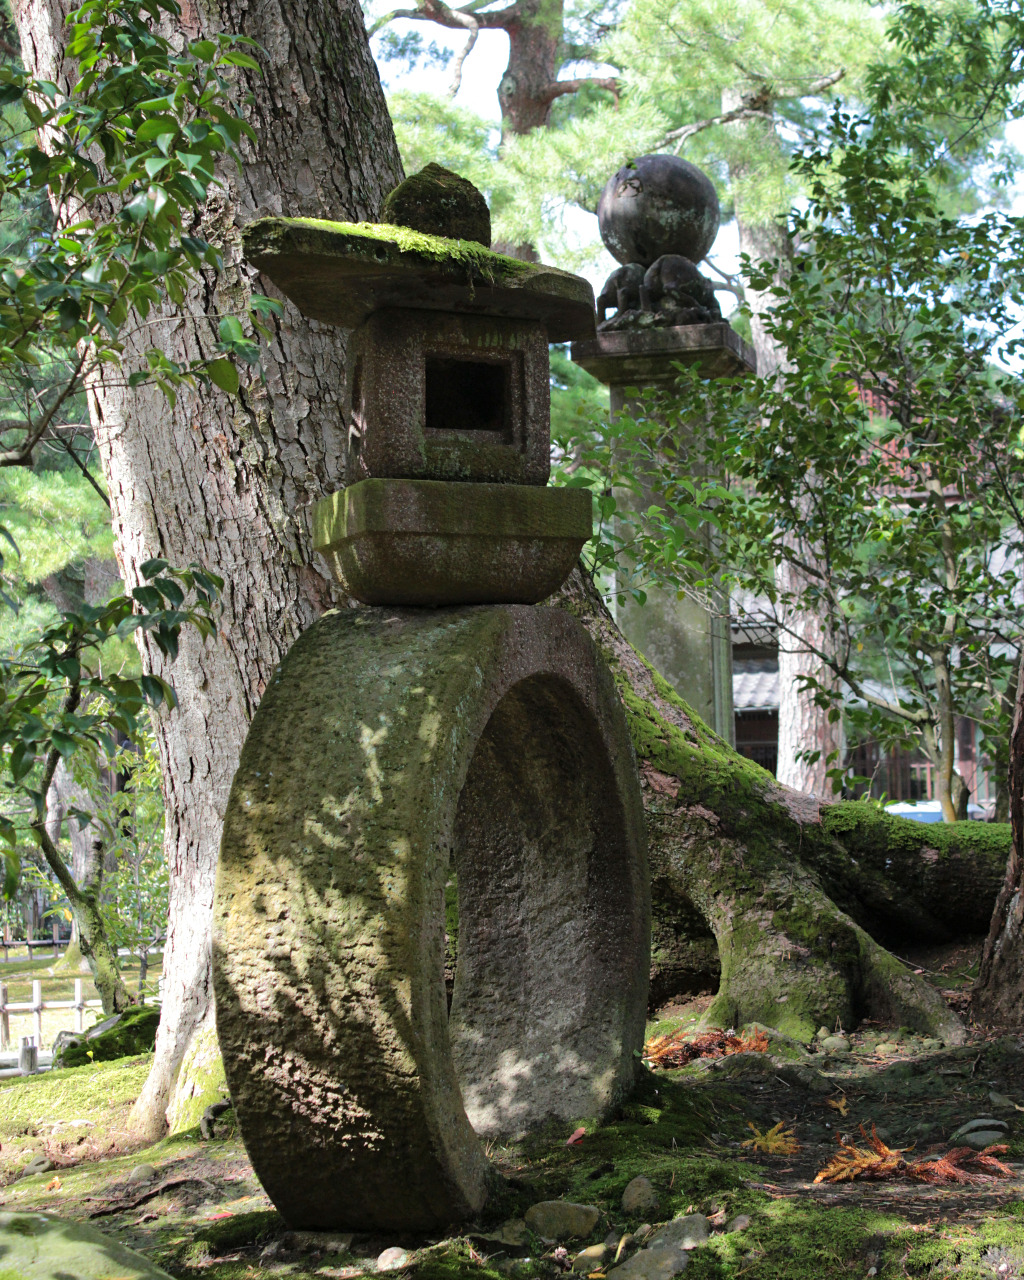 Unique stone lanterns and statues at Kanazawa Shrine